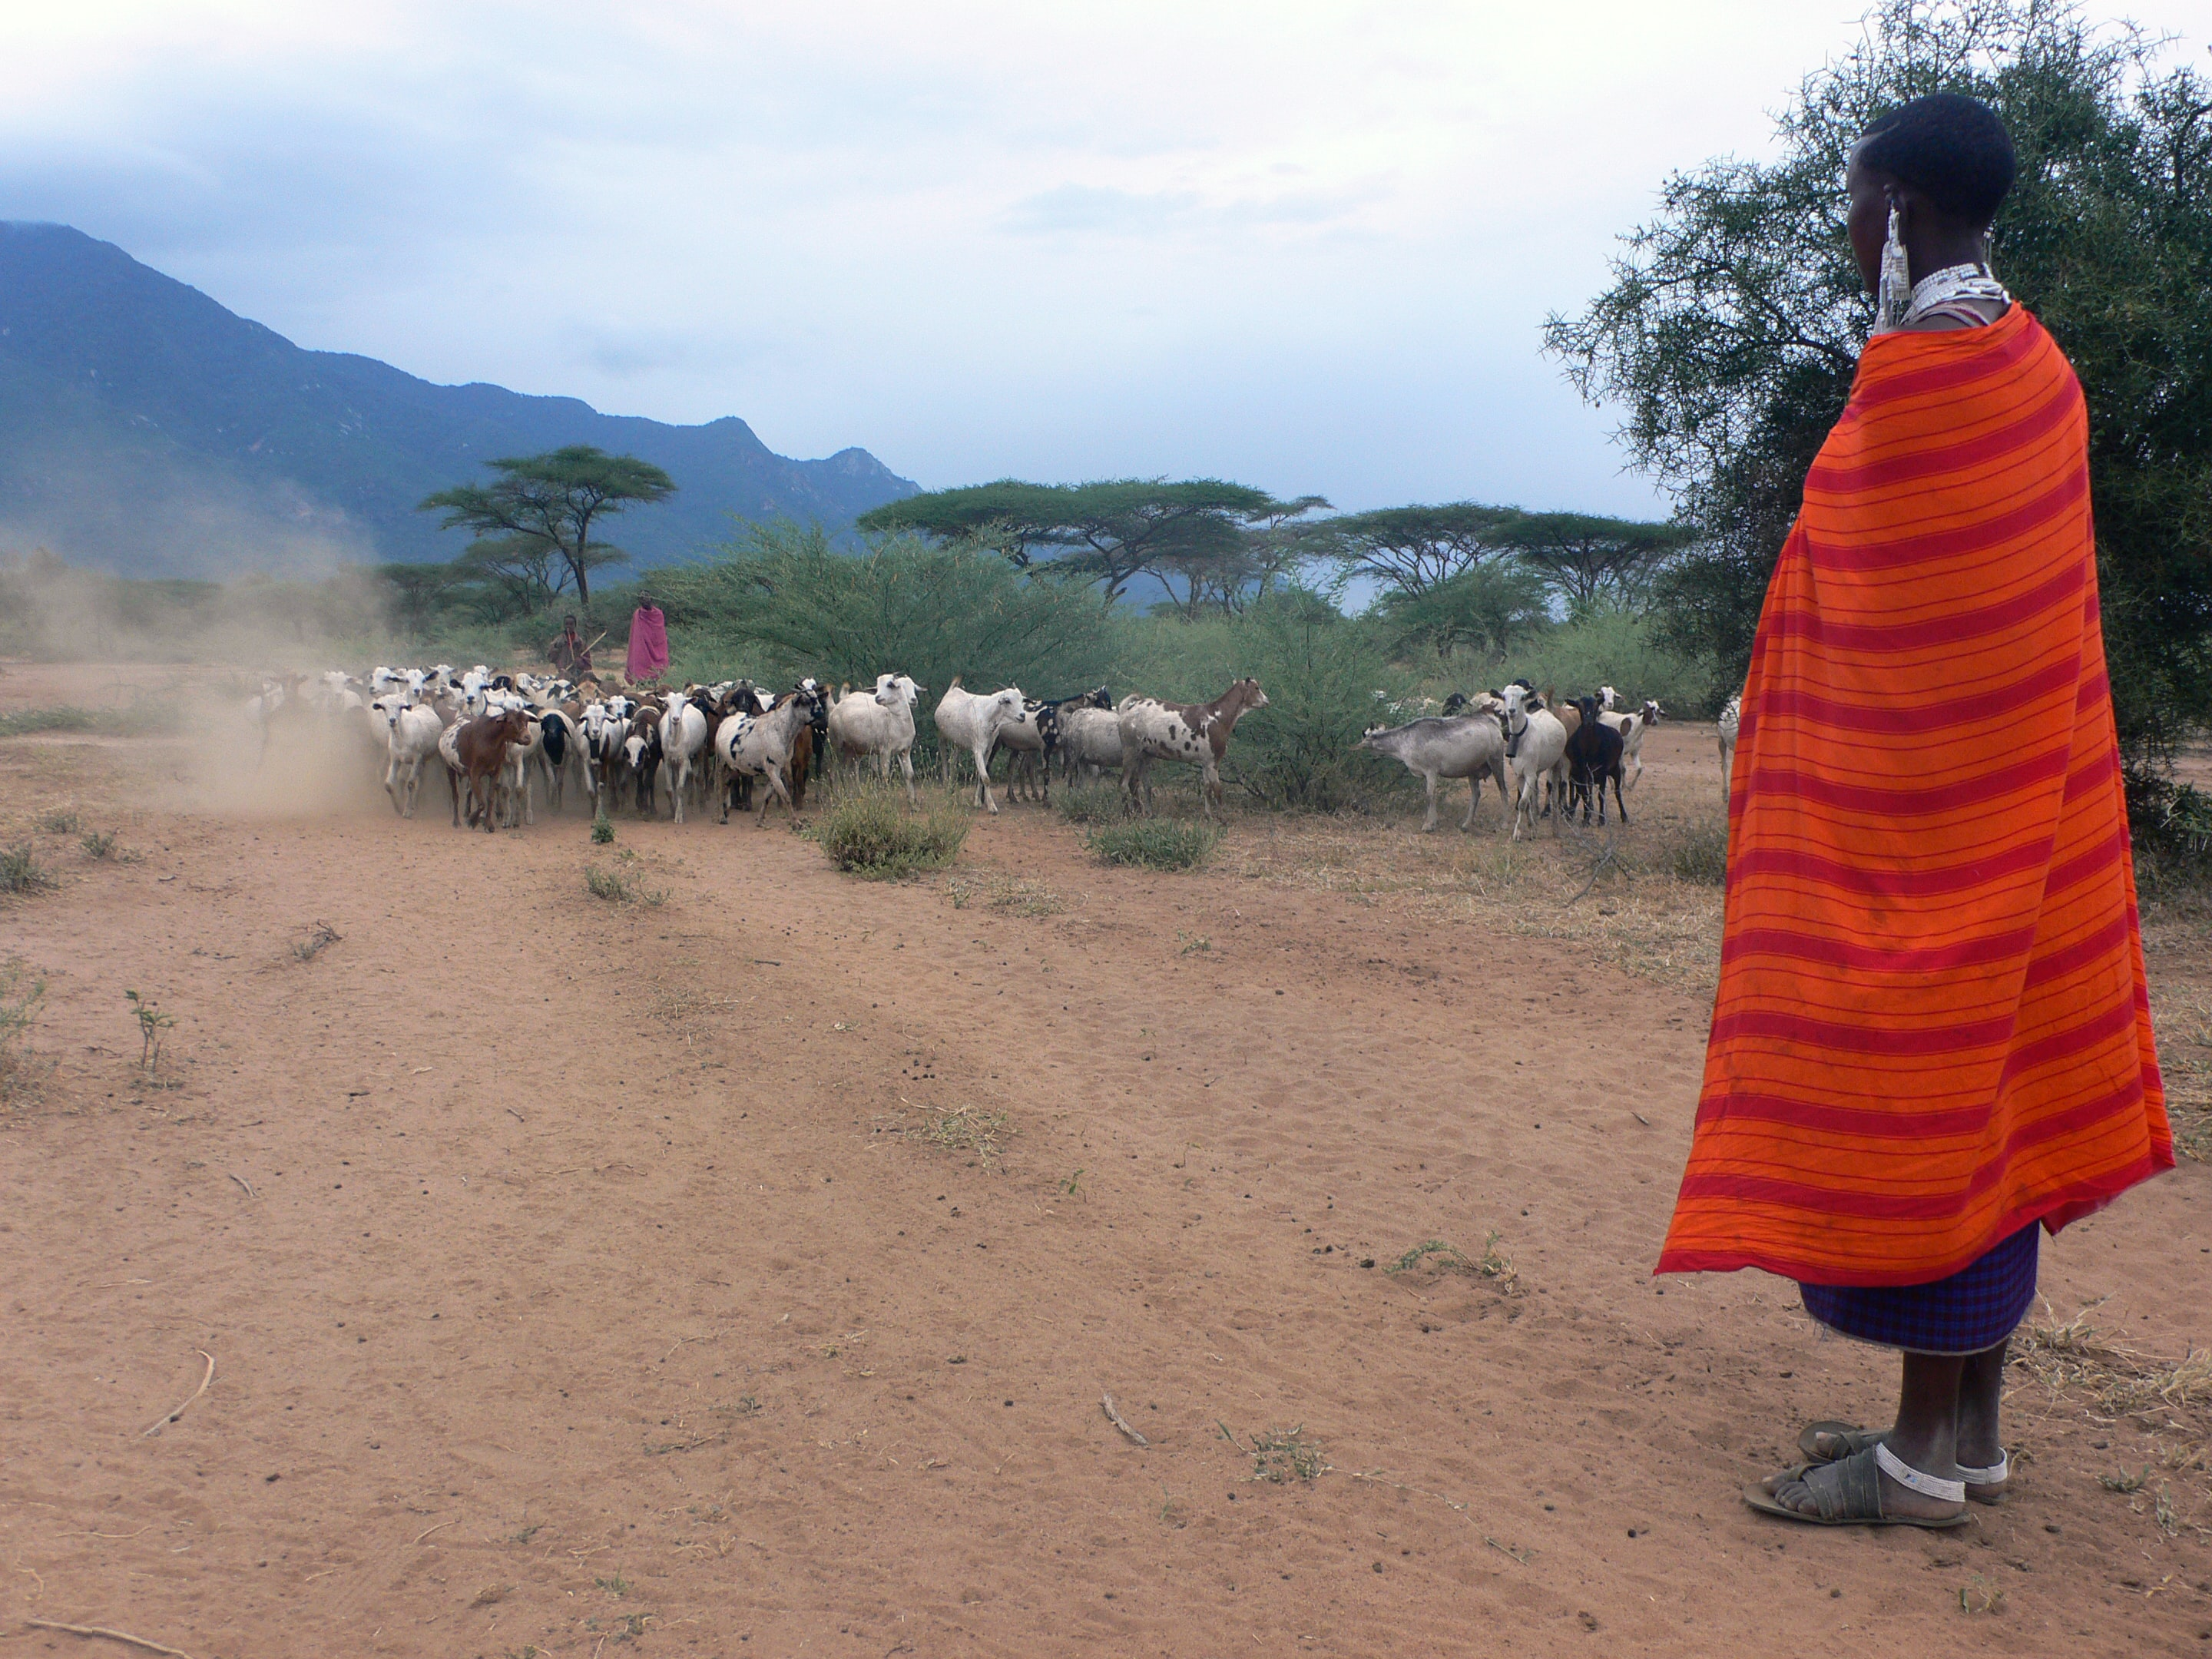 man standing near herd of goats during daytime